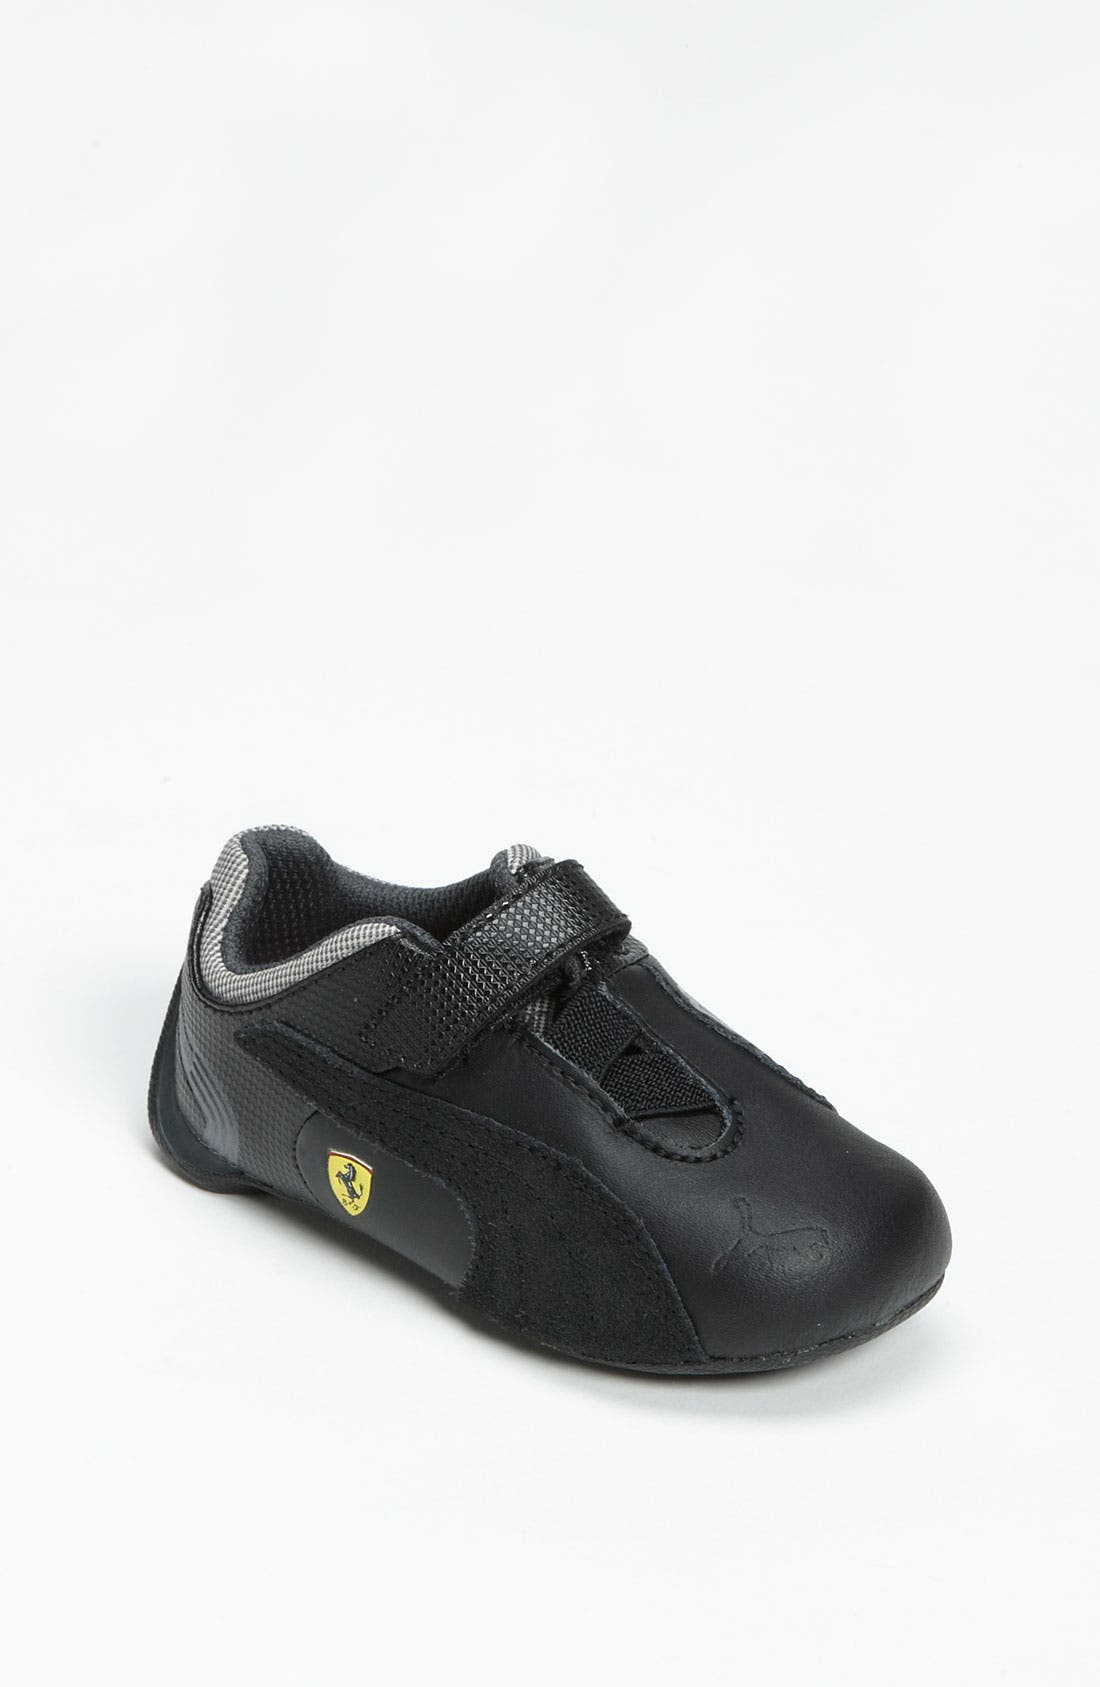 Alternate Image 1 Selected - PUMA 'Future Cat' Sneaker (Baby, Walker, Toddler & Little Kid)